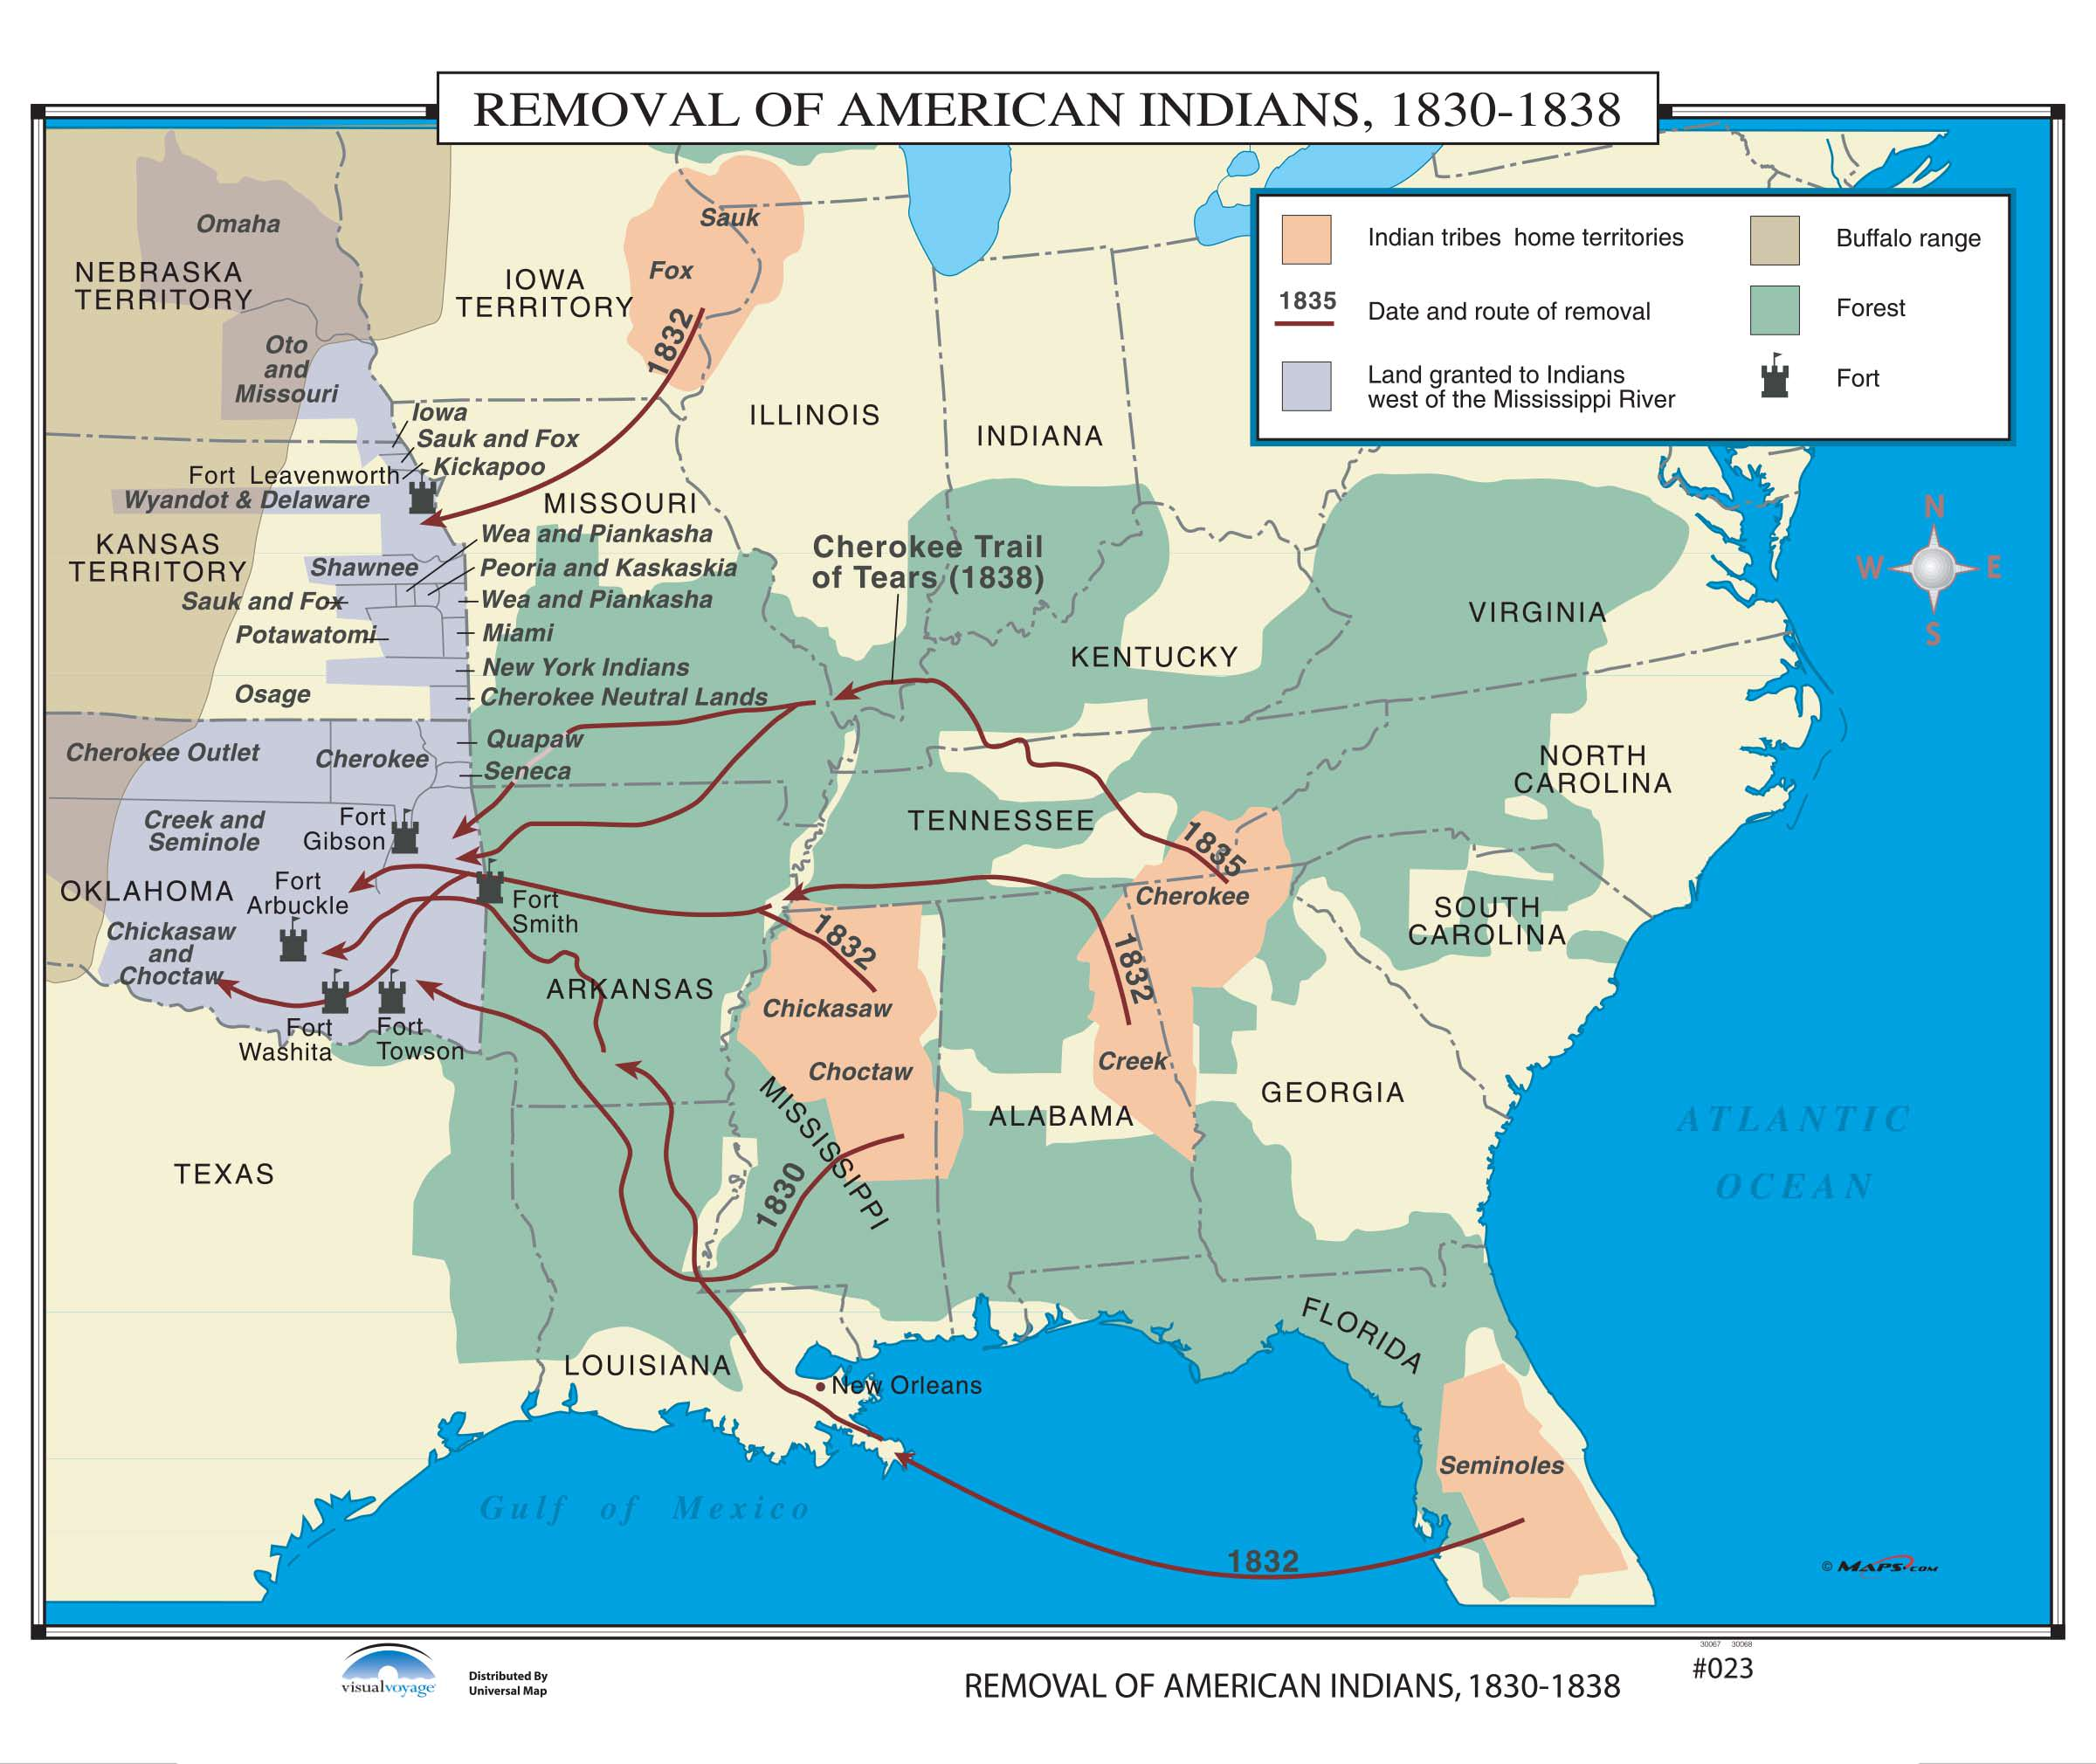 023 removal of american indians 1830 1838